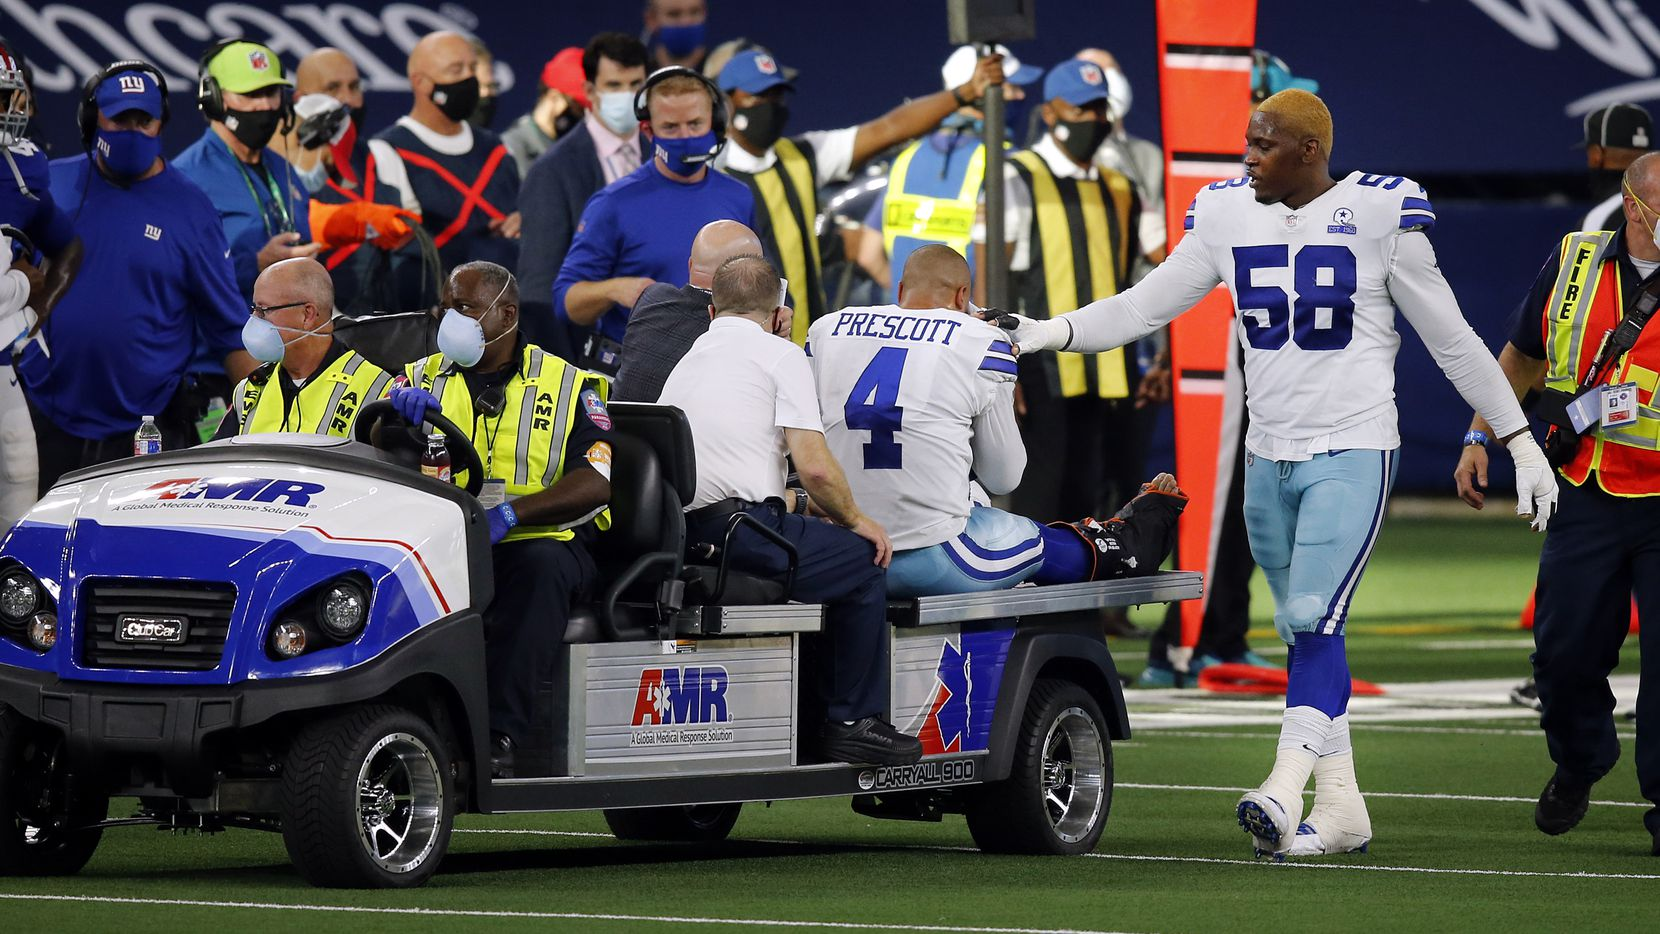 Cowboys defensive end Aldon Smith (58) comforts quarterback Dak Prescott (4) as he's carted off the field with an ankle injury during a game against the Giants at AT&T Stadium in Arlington on Sunday, Oct. 11, 2020.